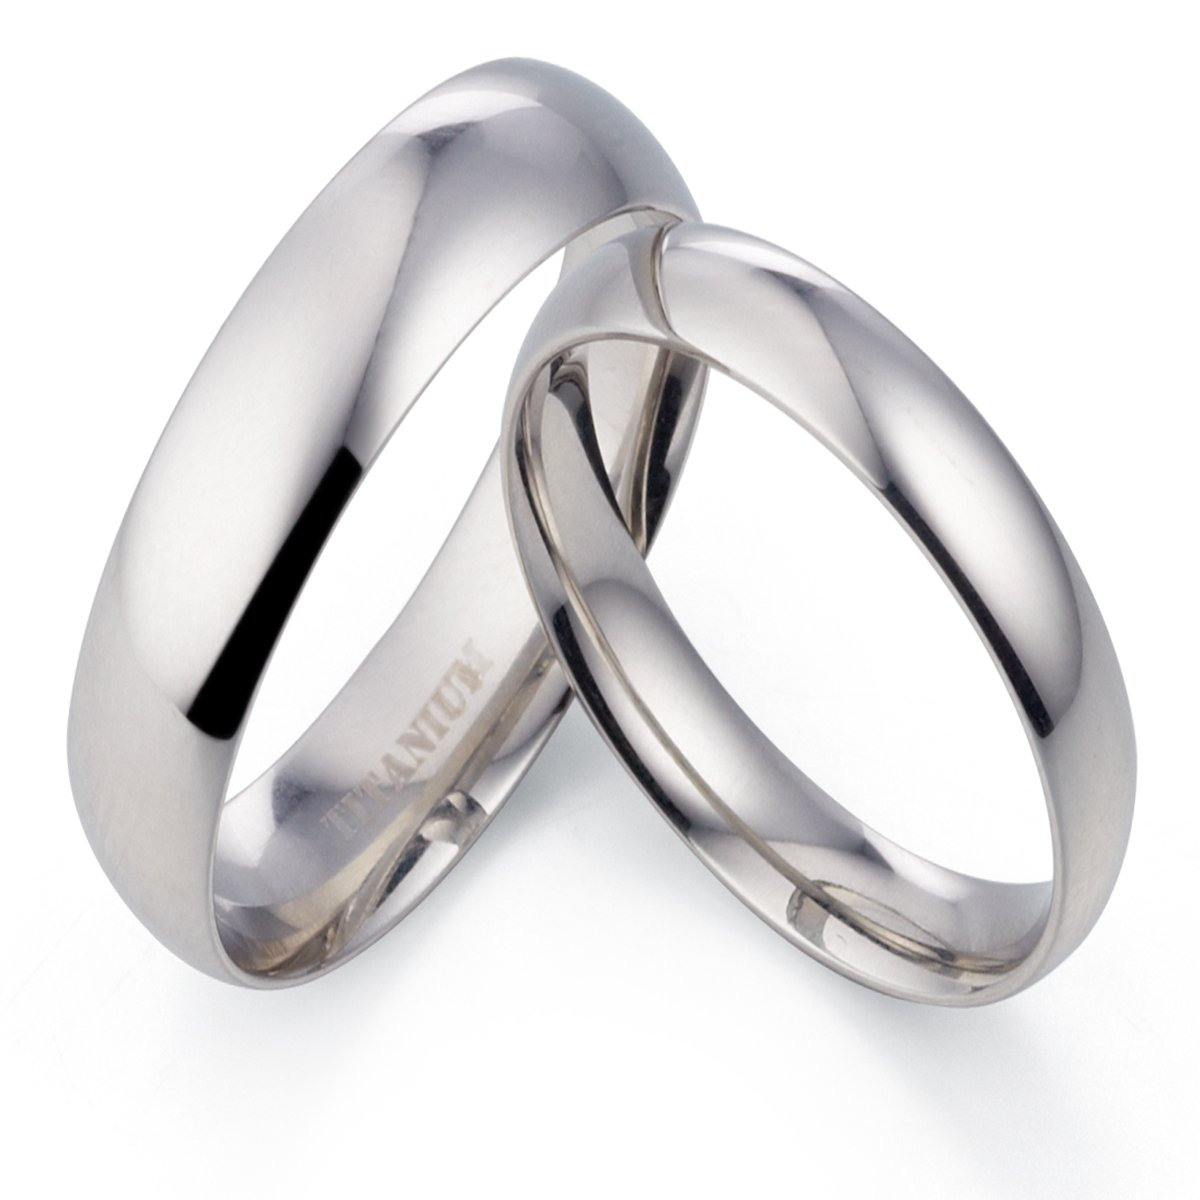 7 Gemini His /& Her Groom /& Bride Plain Dome Court Comfort Fit Matching Wedding Engagement Titanium Rings Set 6mm /& 4mm Width Men Ring Size 10 Women Ring Size